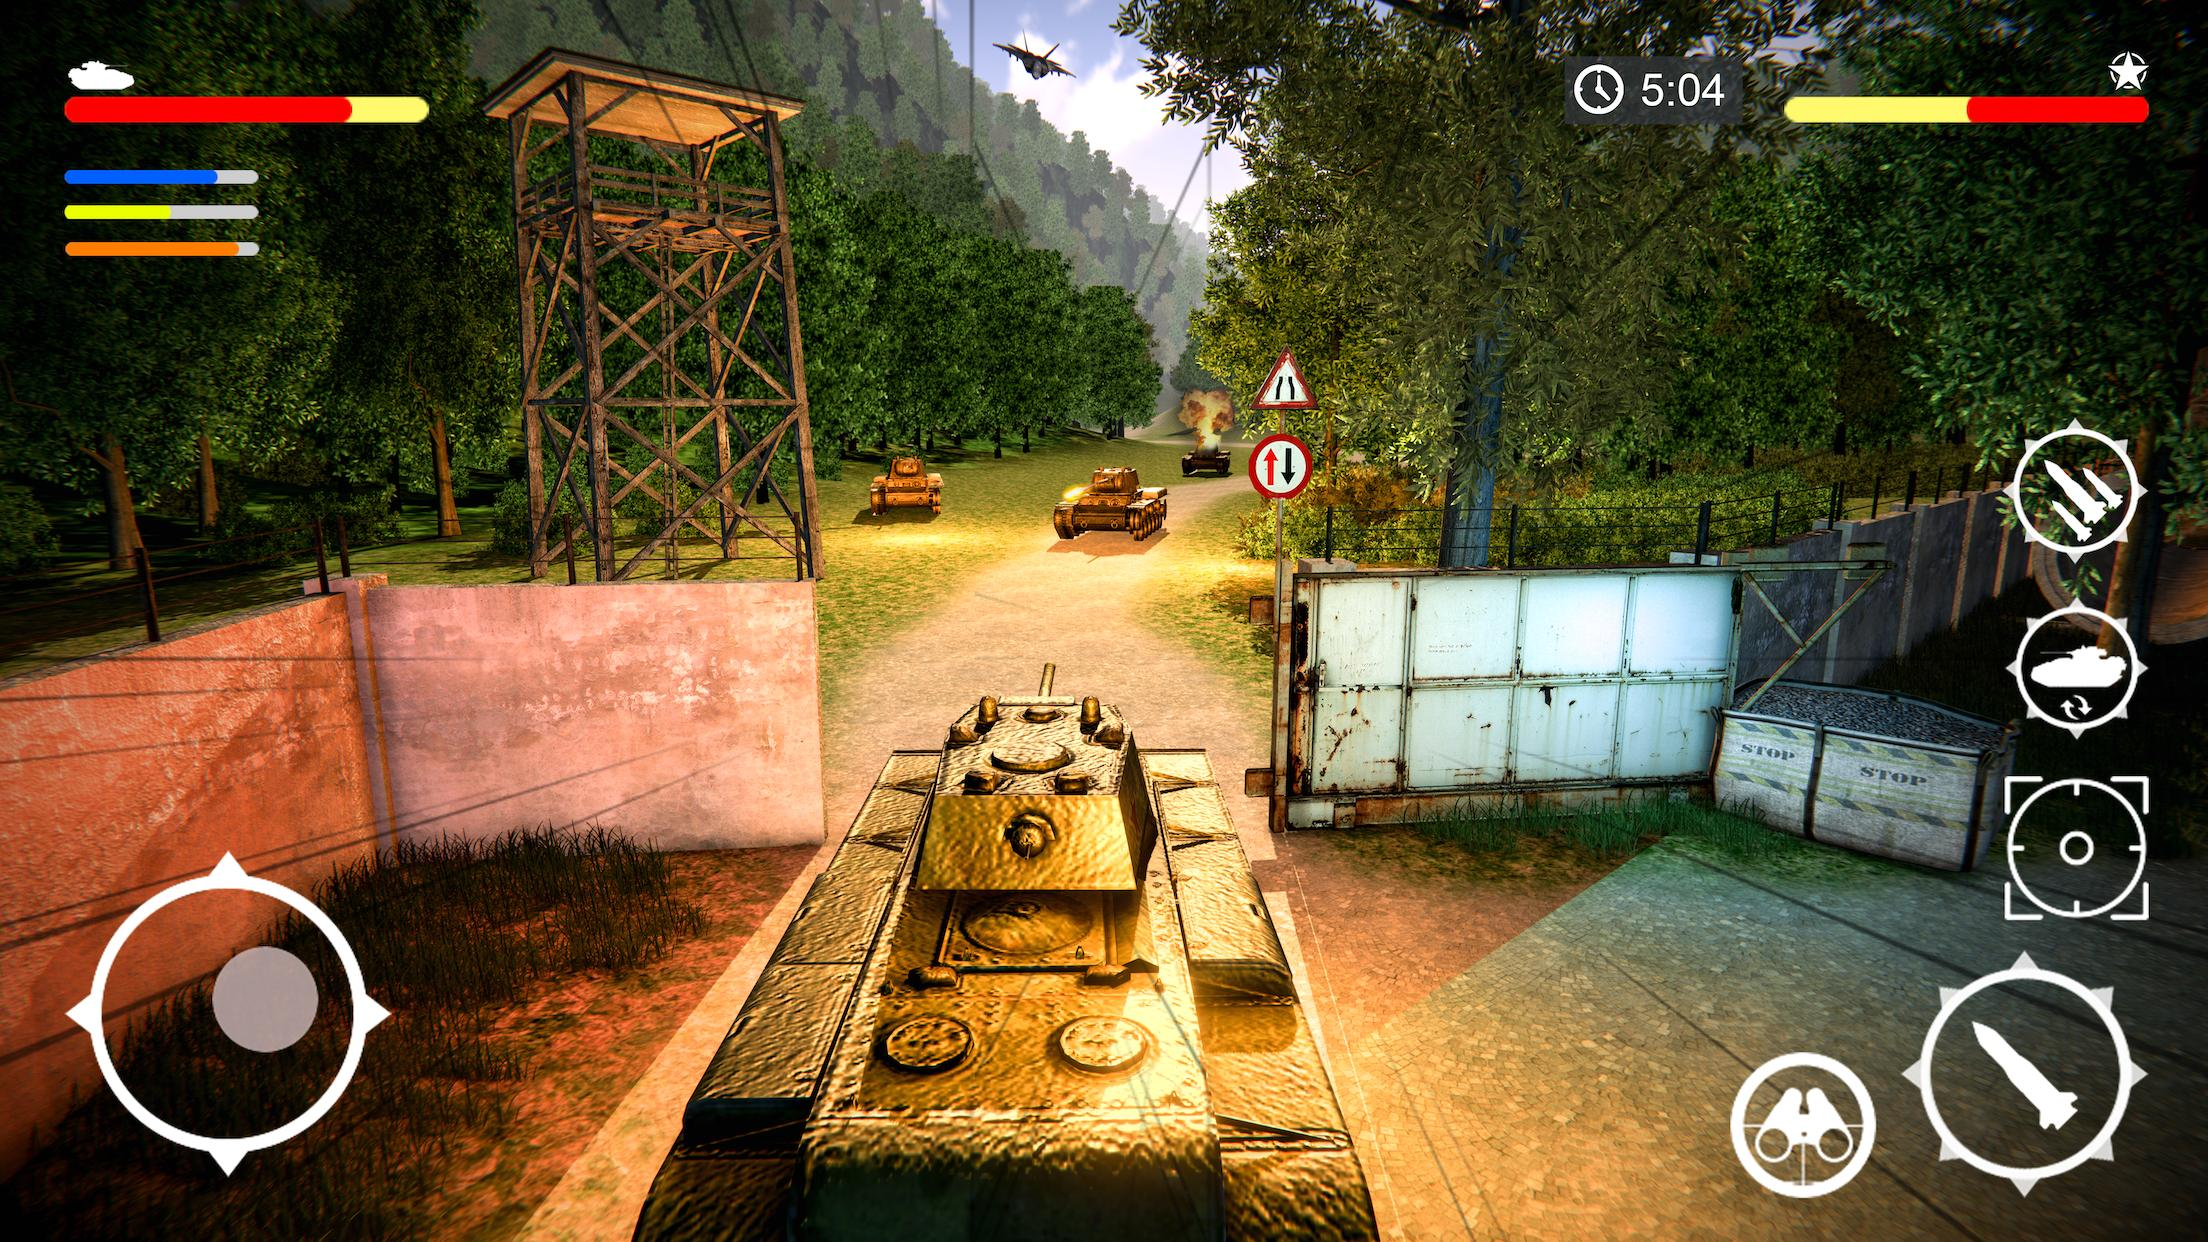 Tank Games 2020 Free Tank Battle Army Combat Games 1.3 Screenshot 6